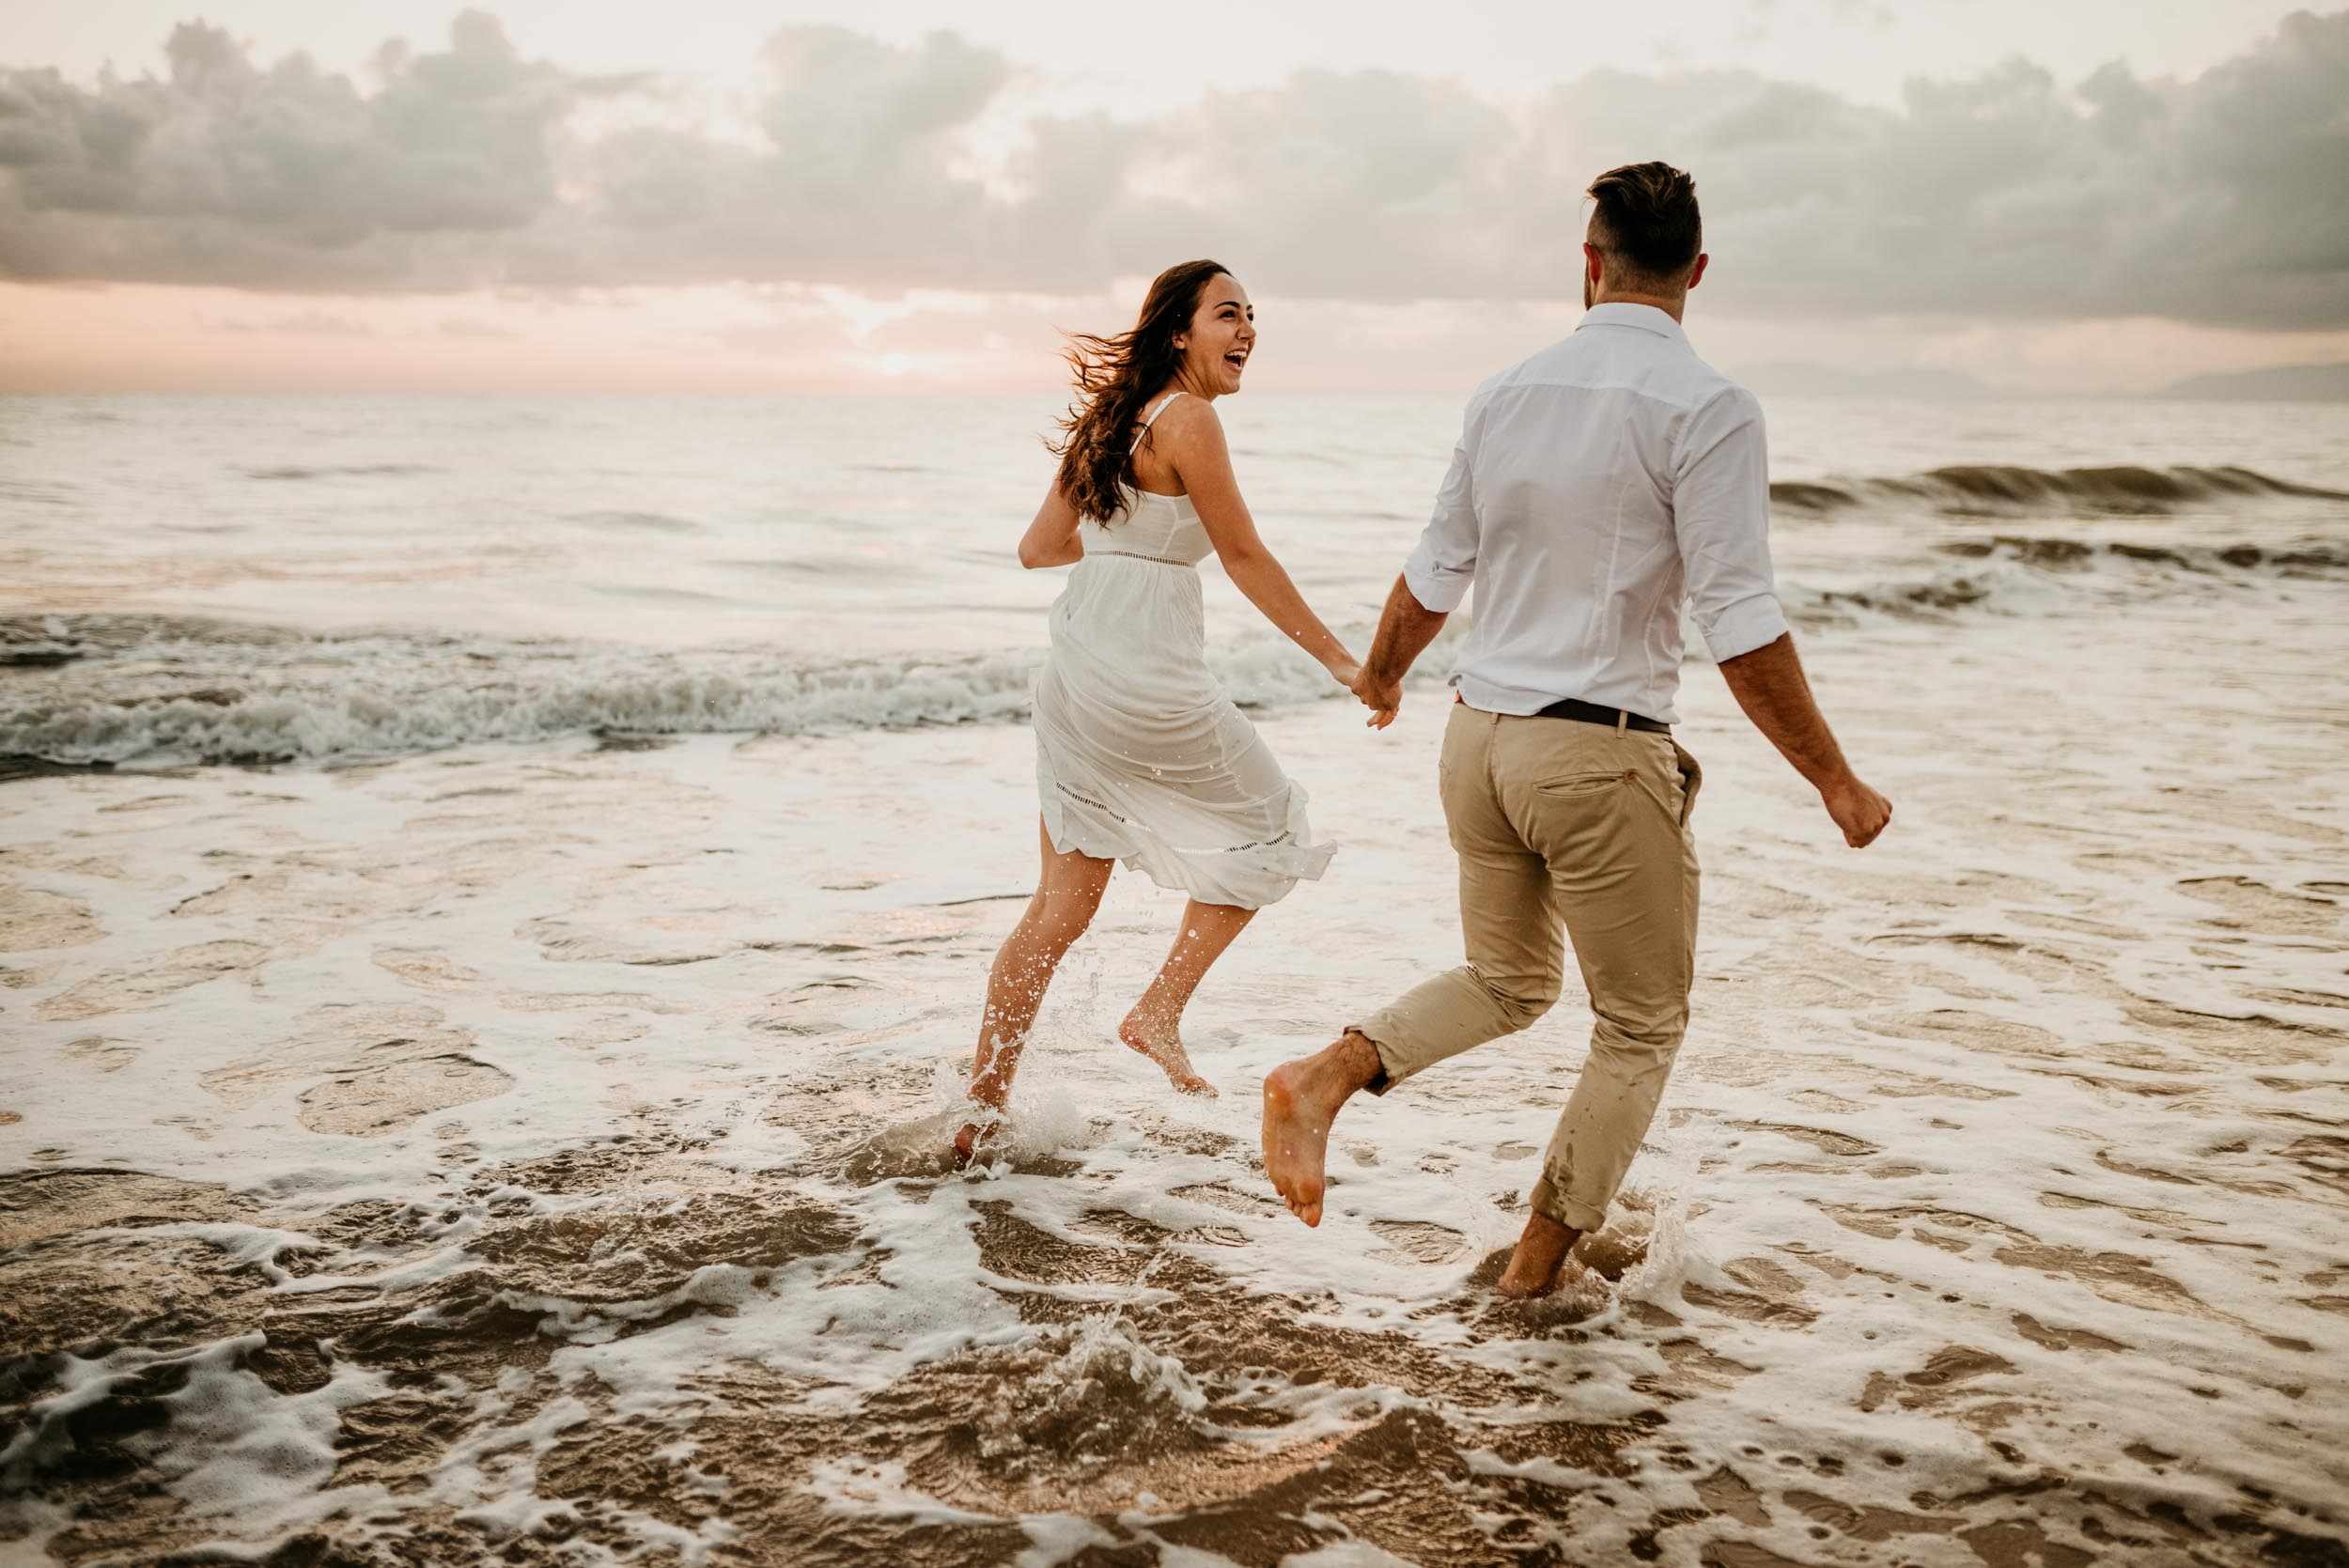 The Raw Photographer - Cairns Wedding Photographer - Engaged Engagement - Beach location - Candid Photography Queensland-8.jpg